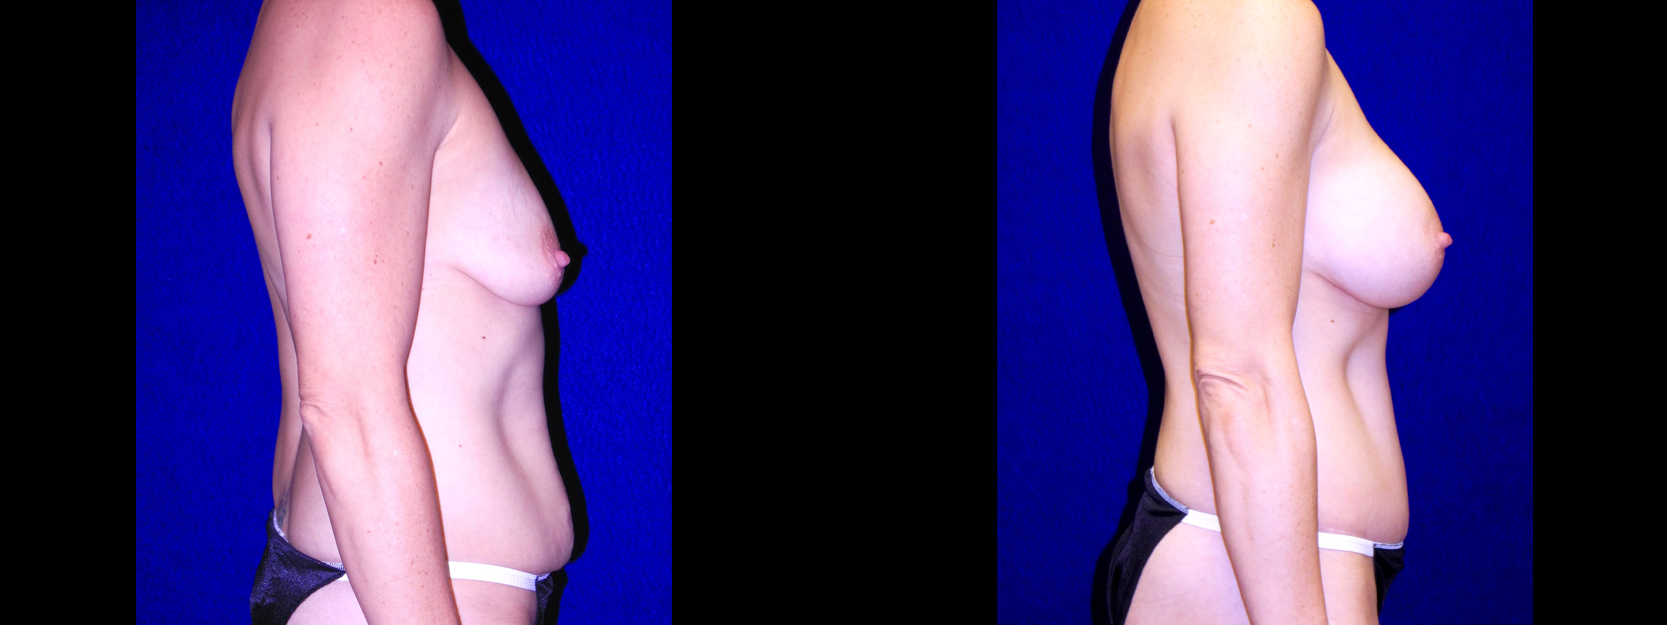 Right Profile View - Breast Augmentation & Tummy Tuck